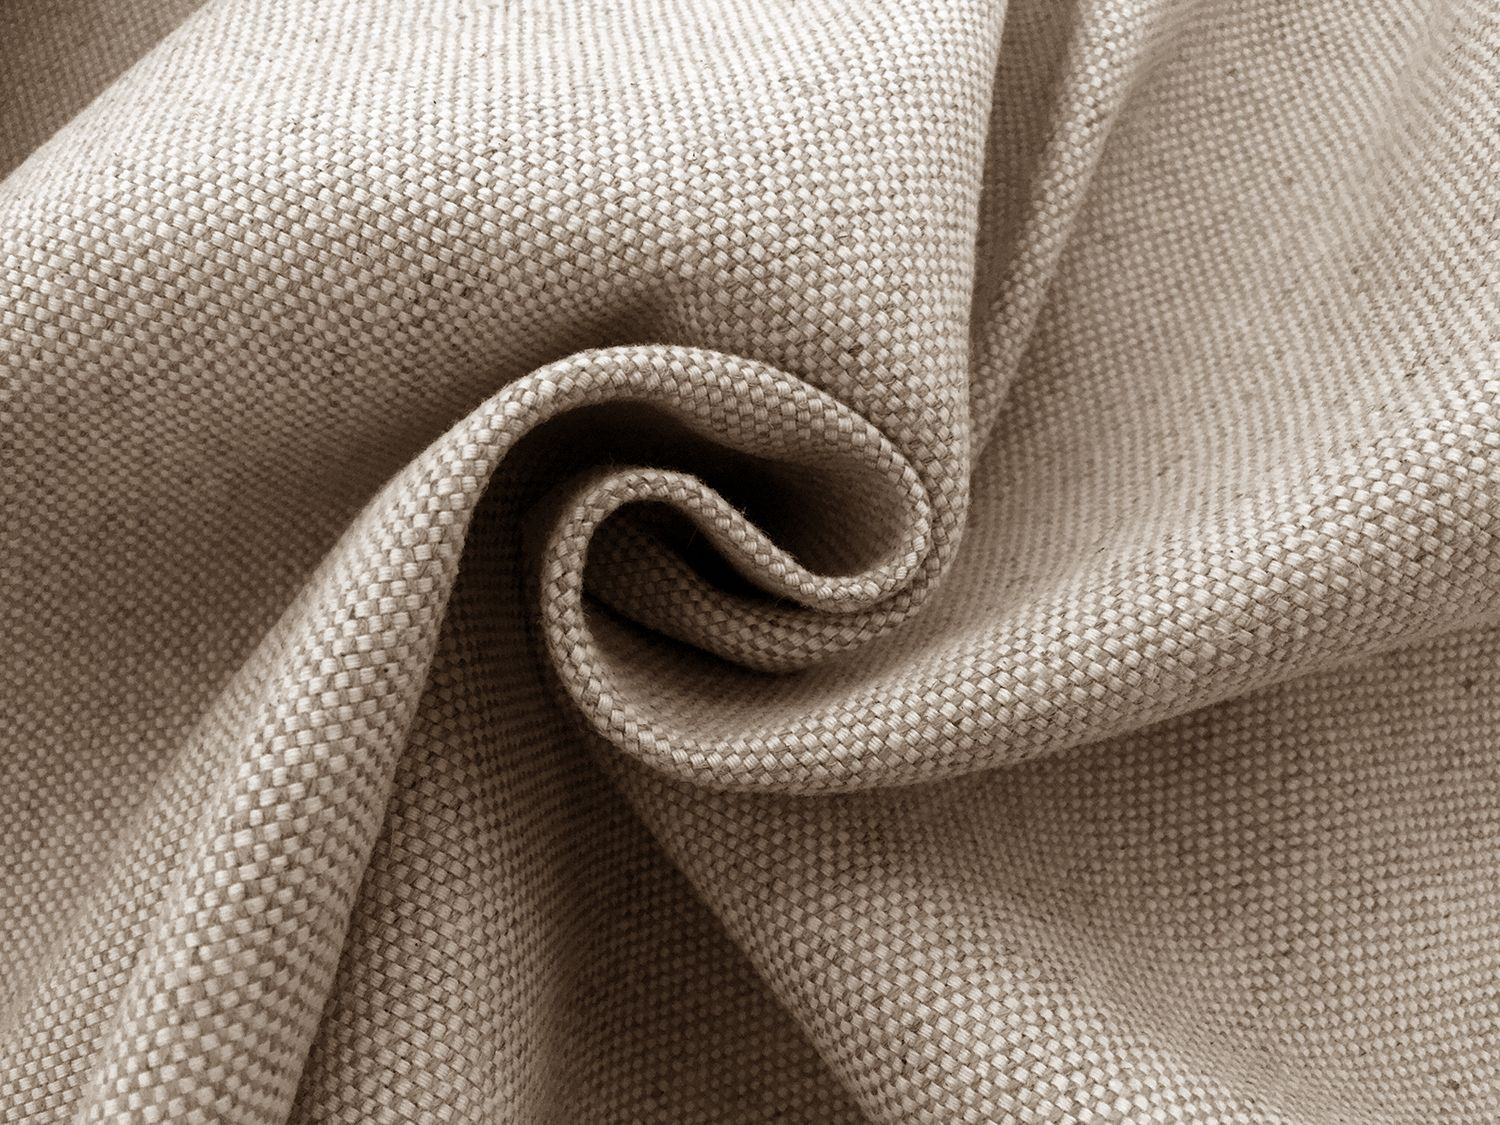 Tumbled Linen Cotton Upholstery In Oatmeal Upholstery Fabrics